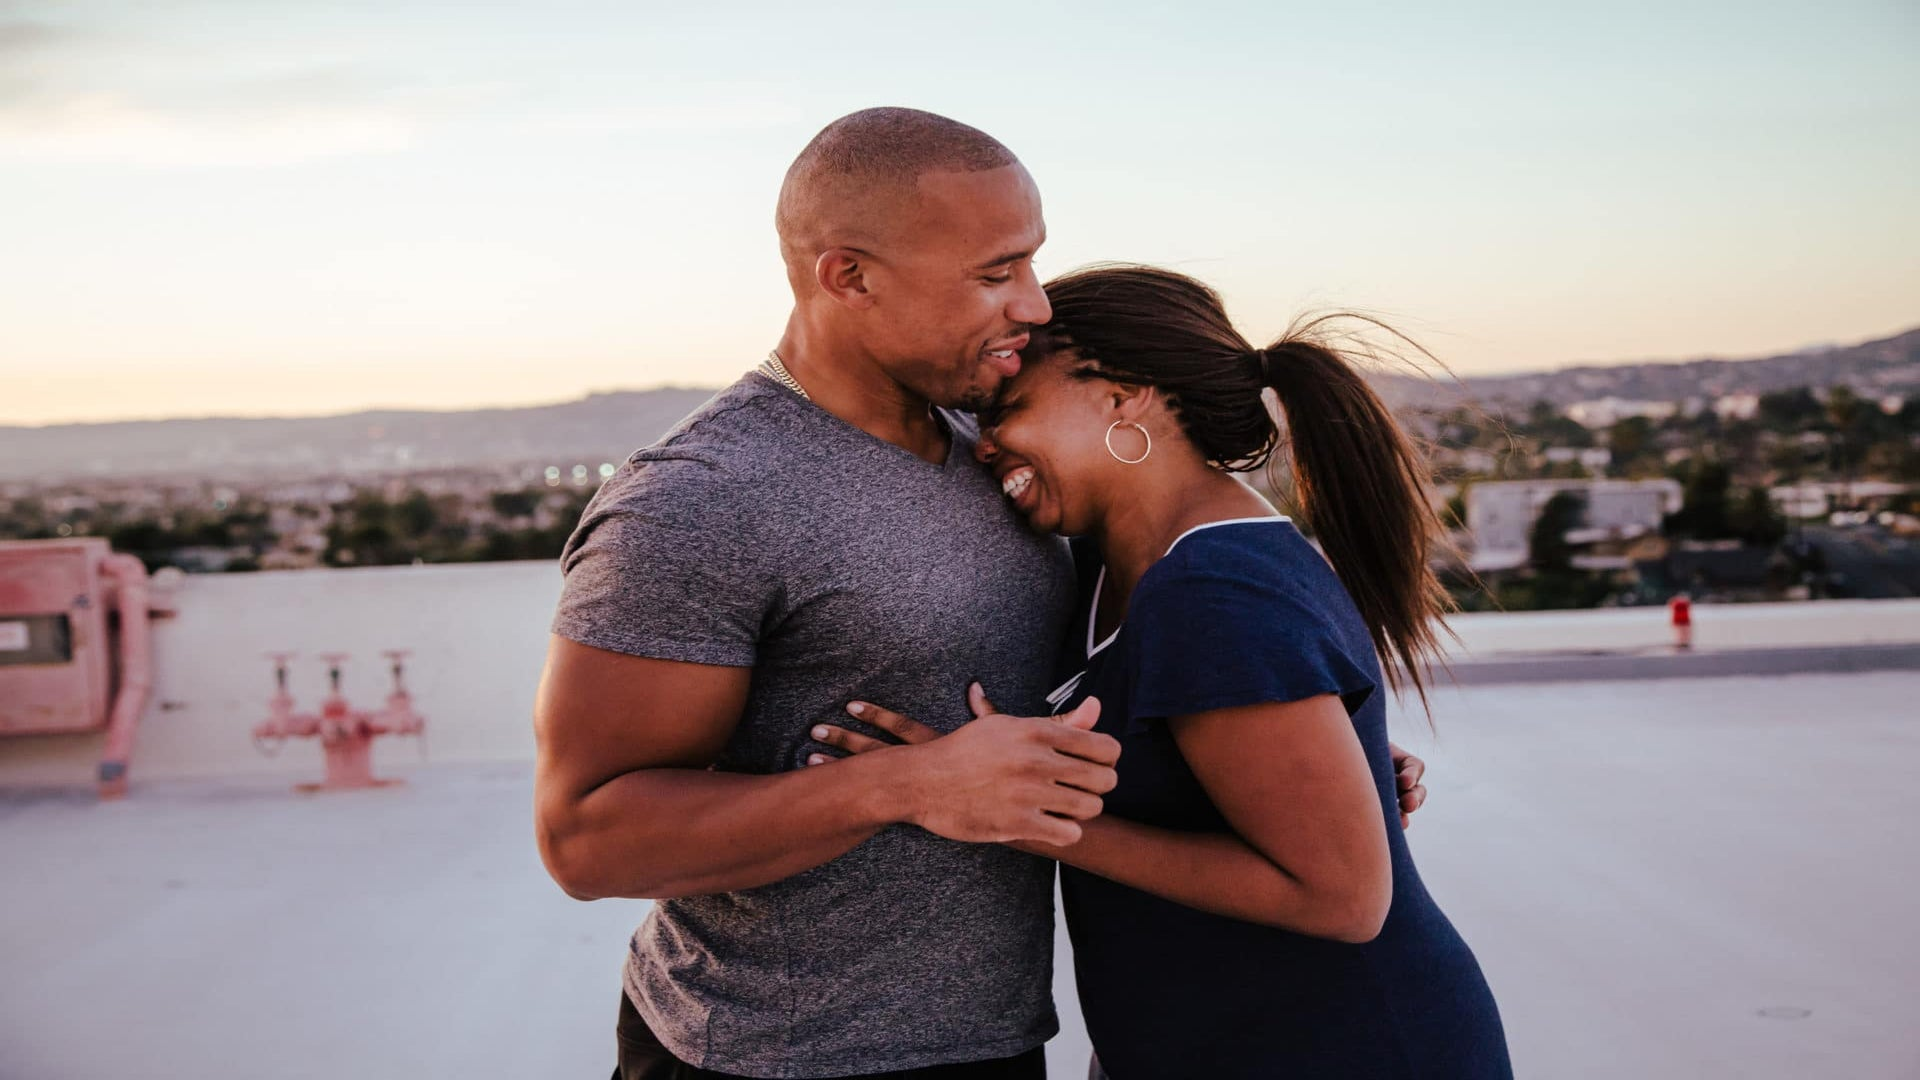 Jemele Hill On Her Surprise Engagement: 'I've Found Someone Who Makes Me Better'